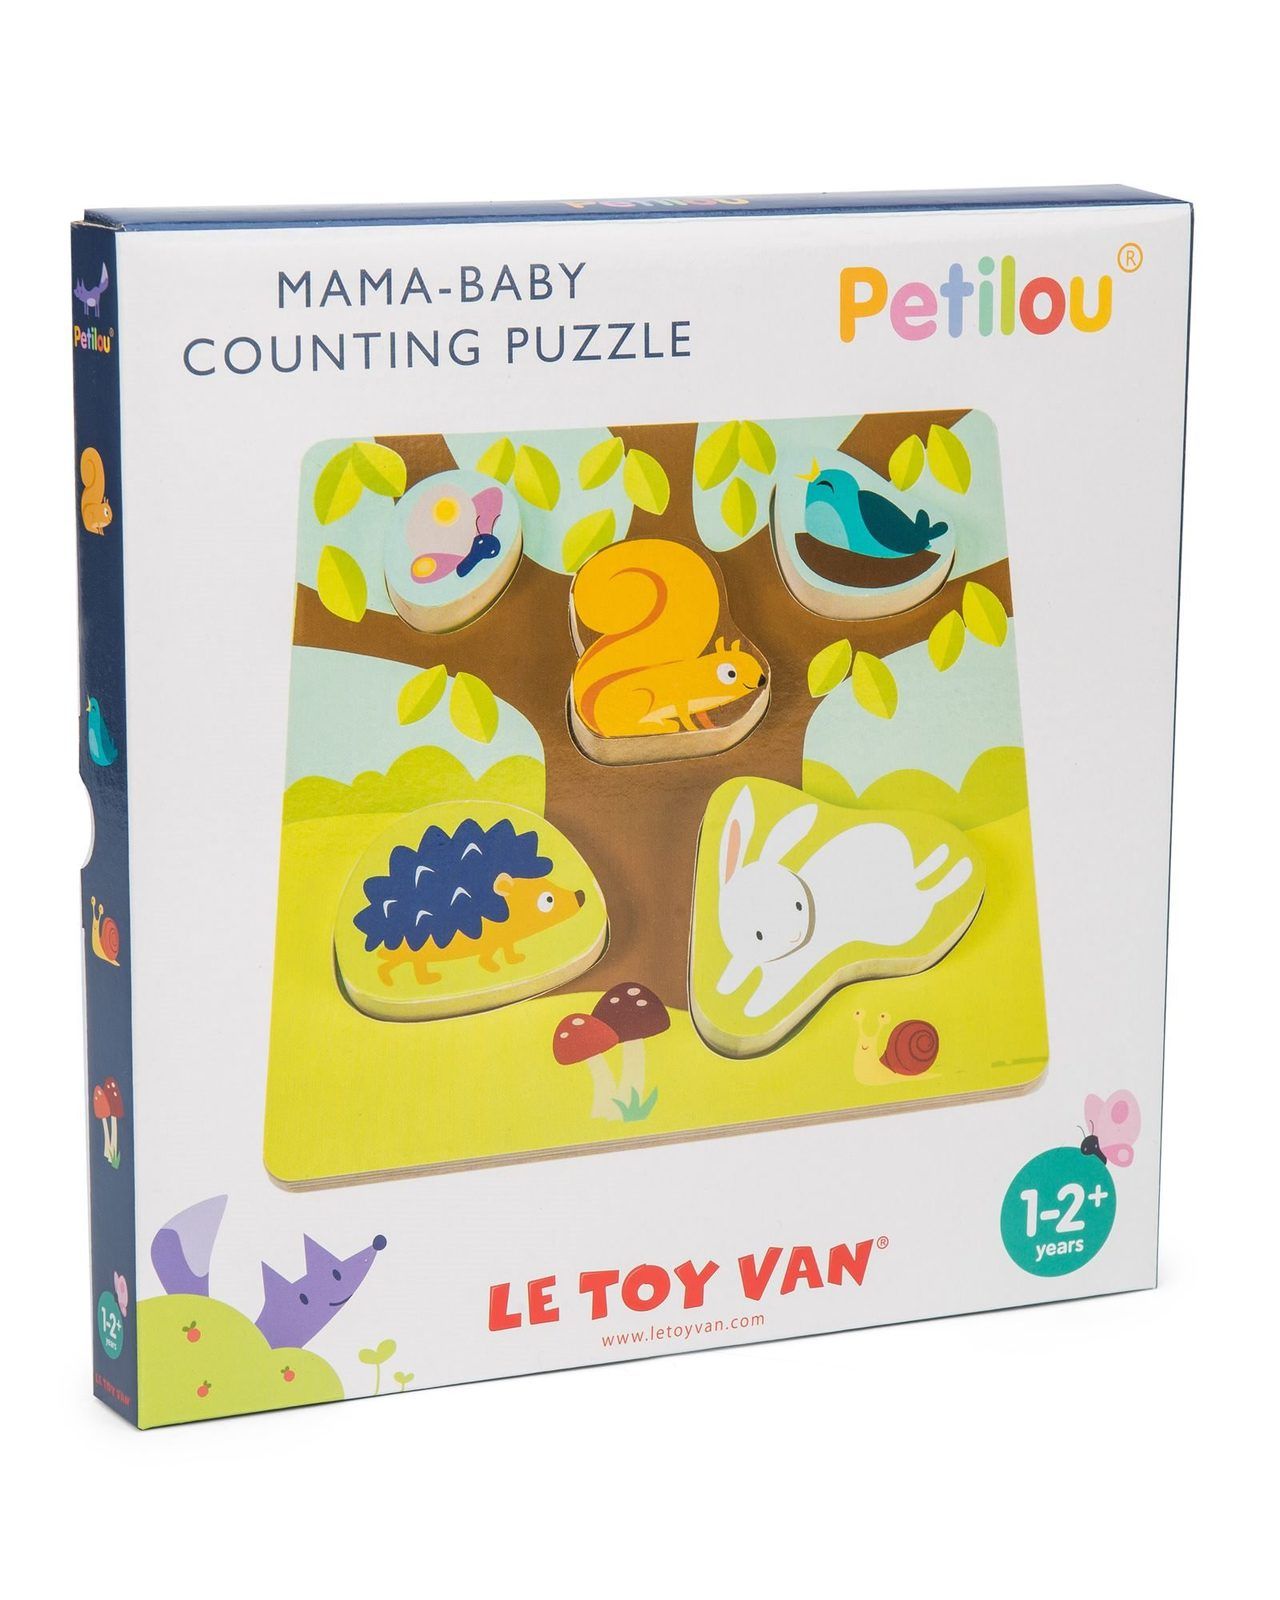 Le Toy Van: Petilou - Mama-Baby Counting Puzzle image